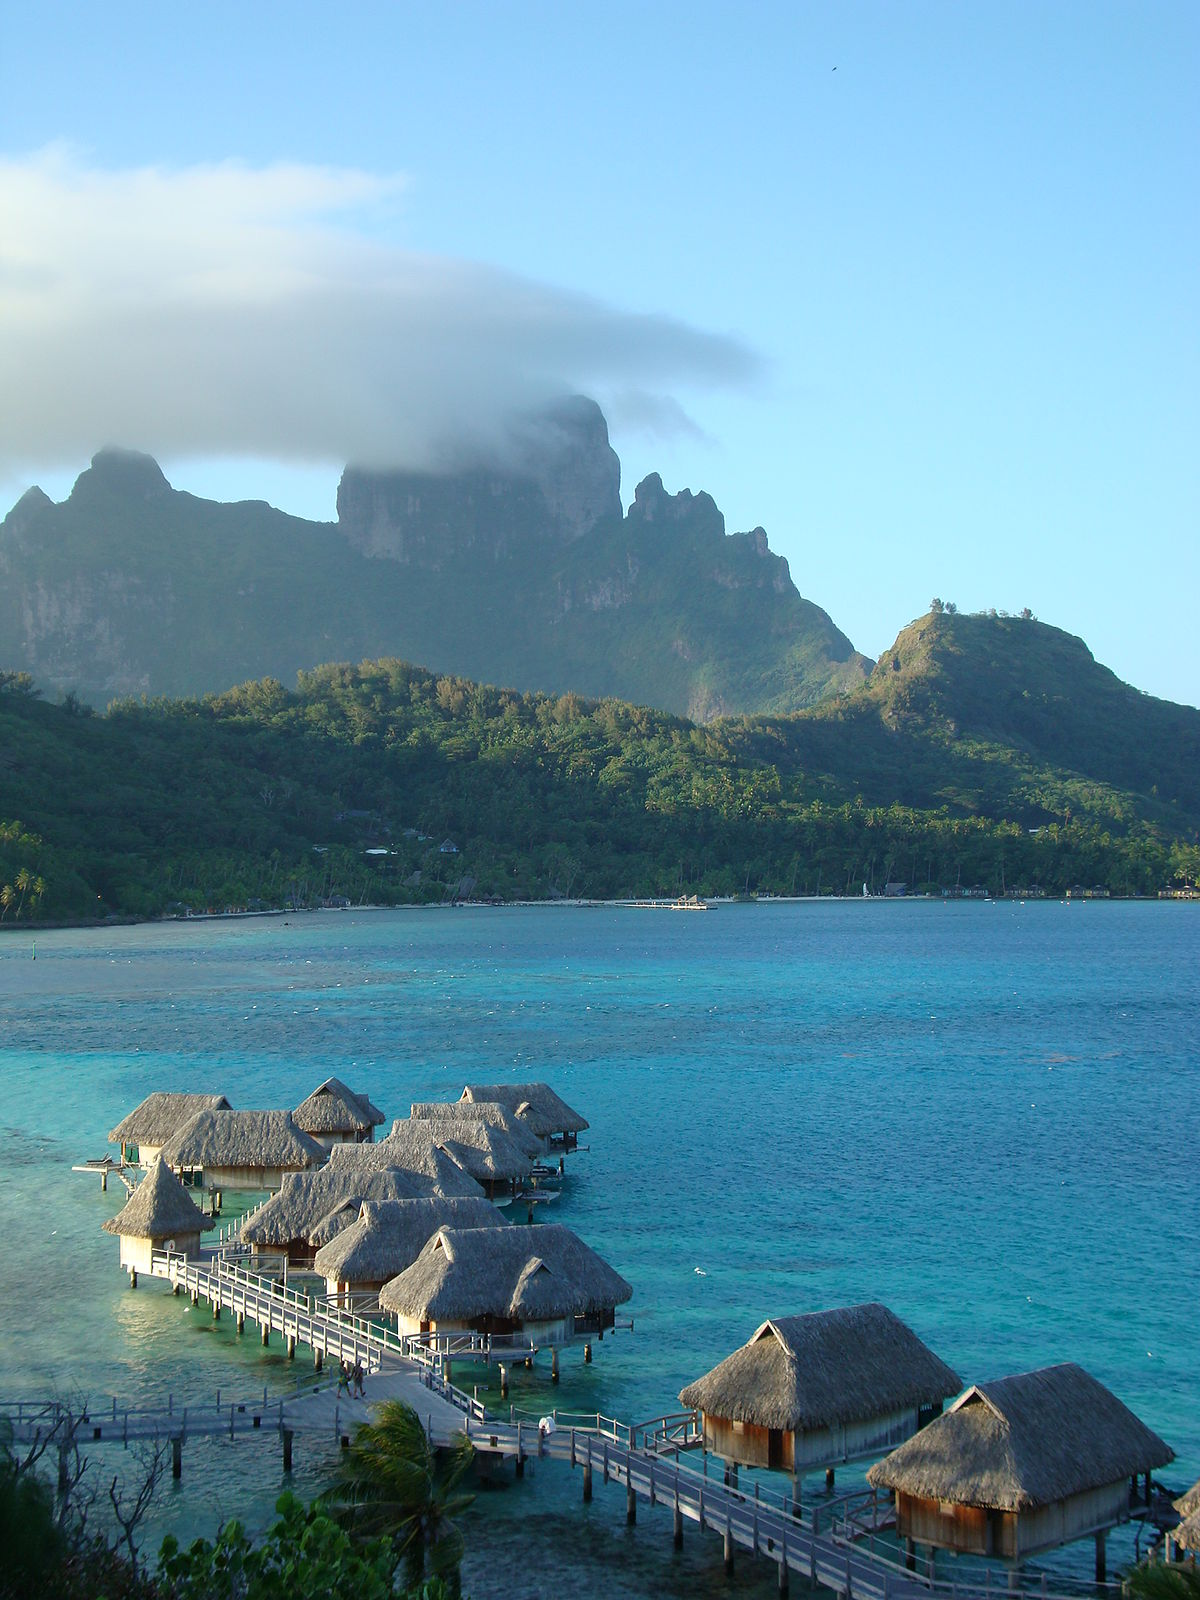 Bora bora travel guide at wikivoyage for What to buy in bora bora